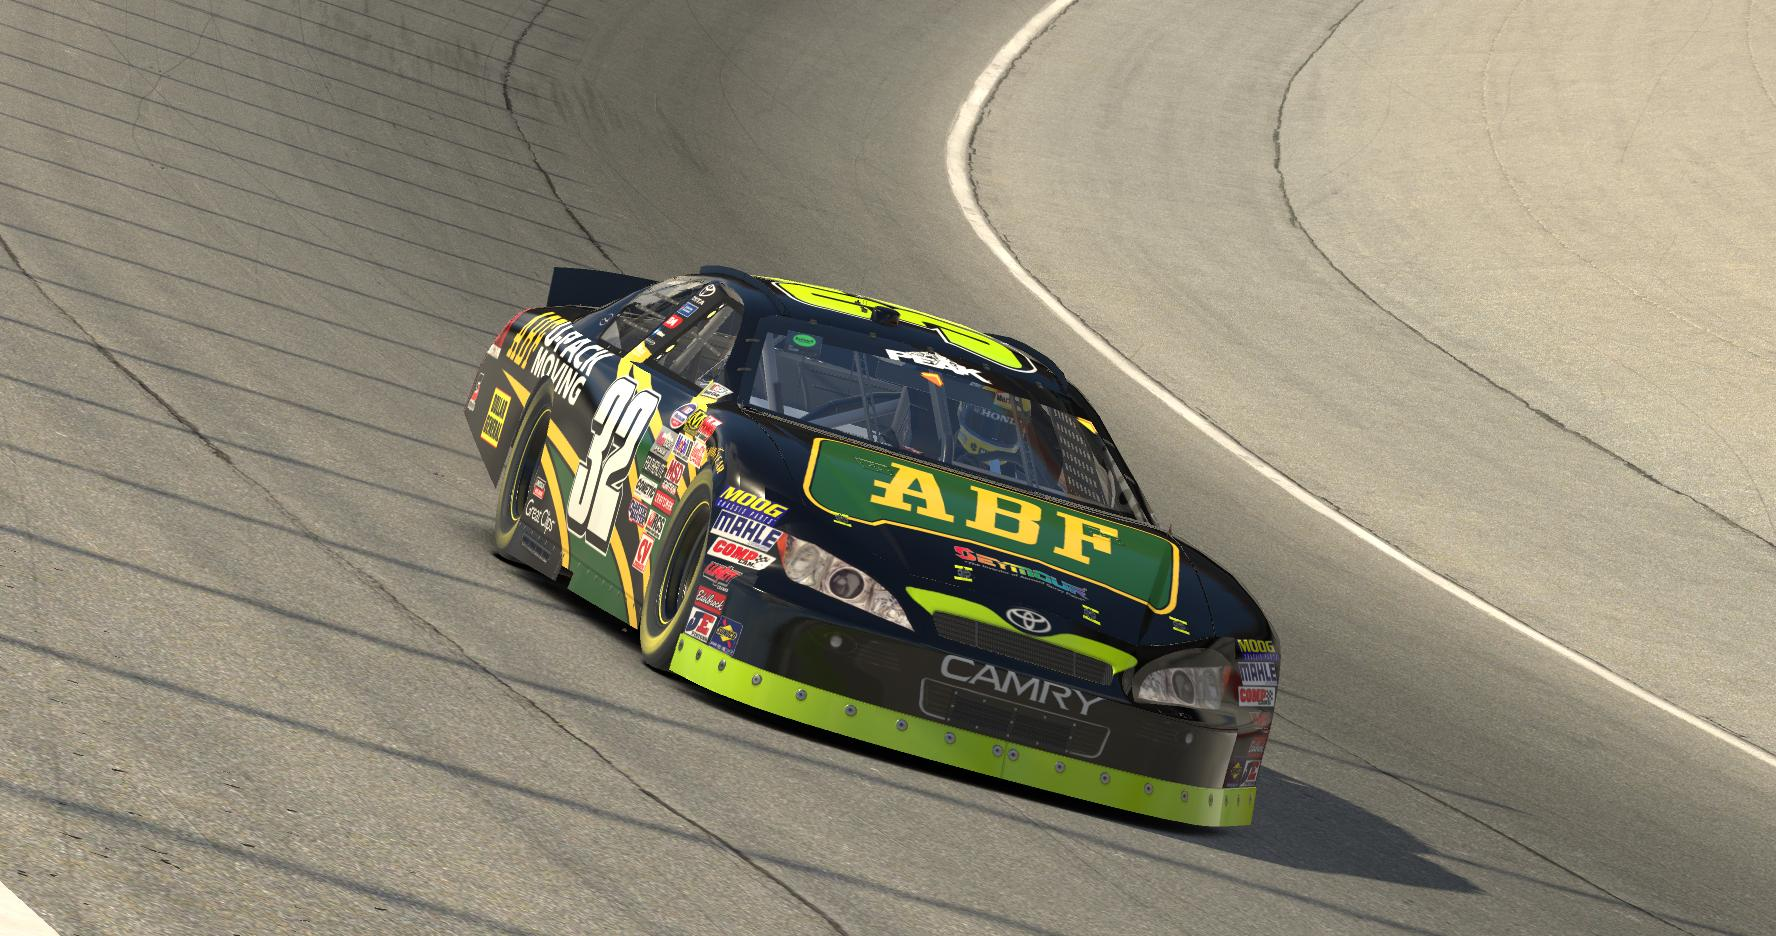 Preview of ABF U-Pack Moving Toyota Camry (Brian Vickers 2008) by Erik Le